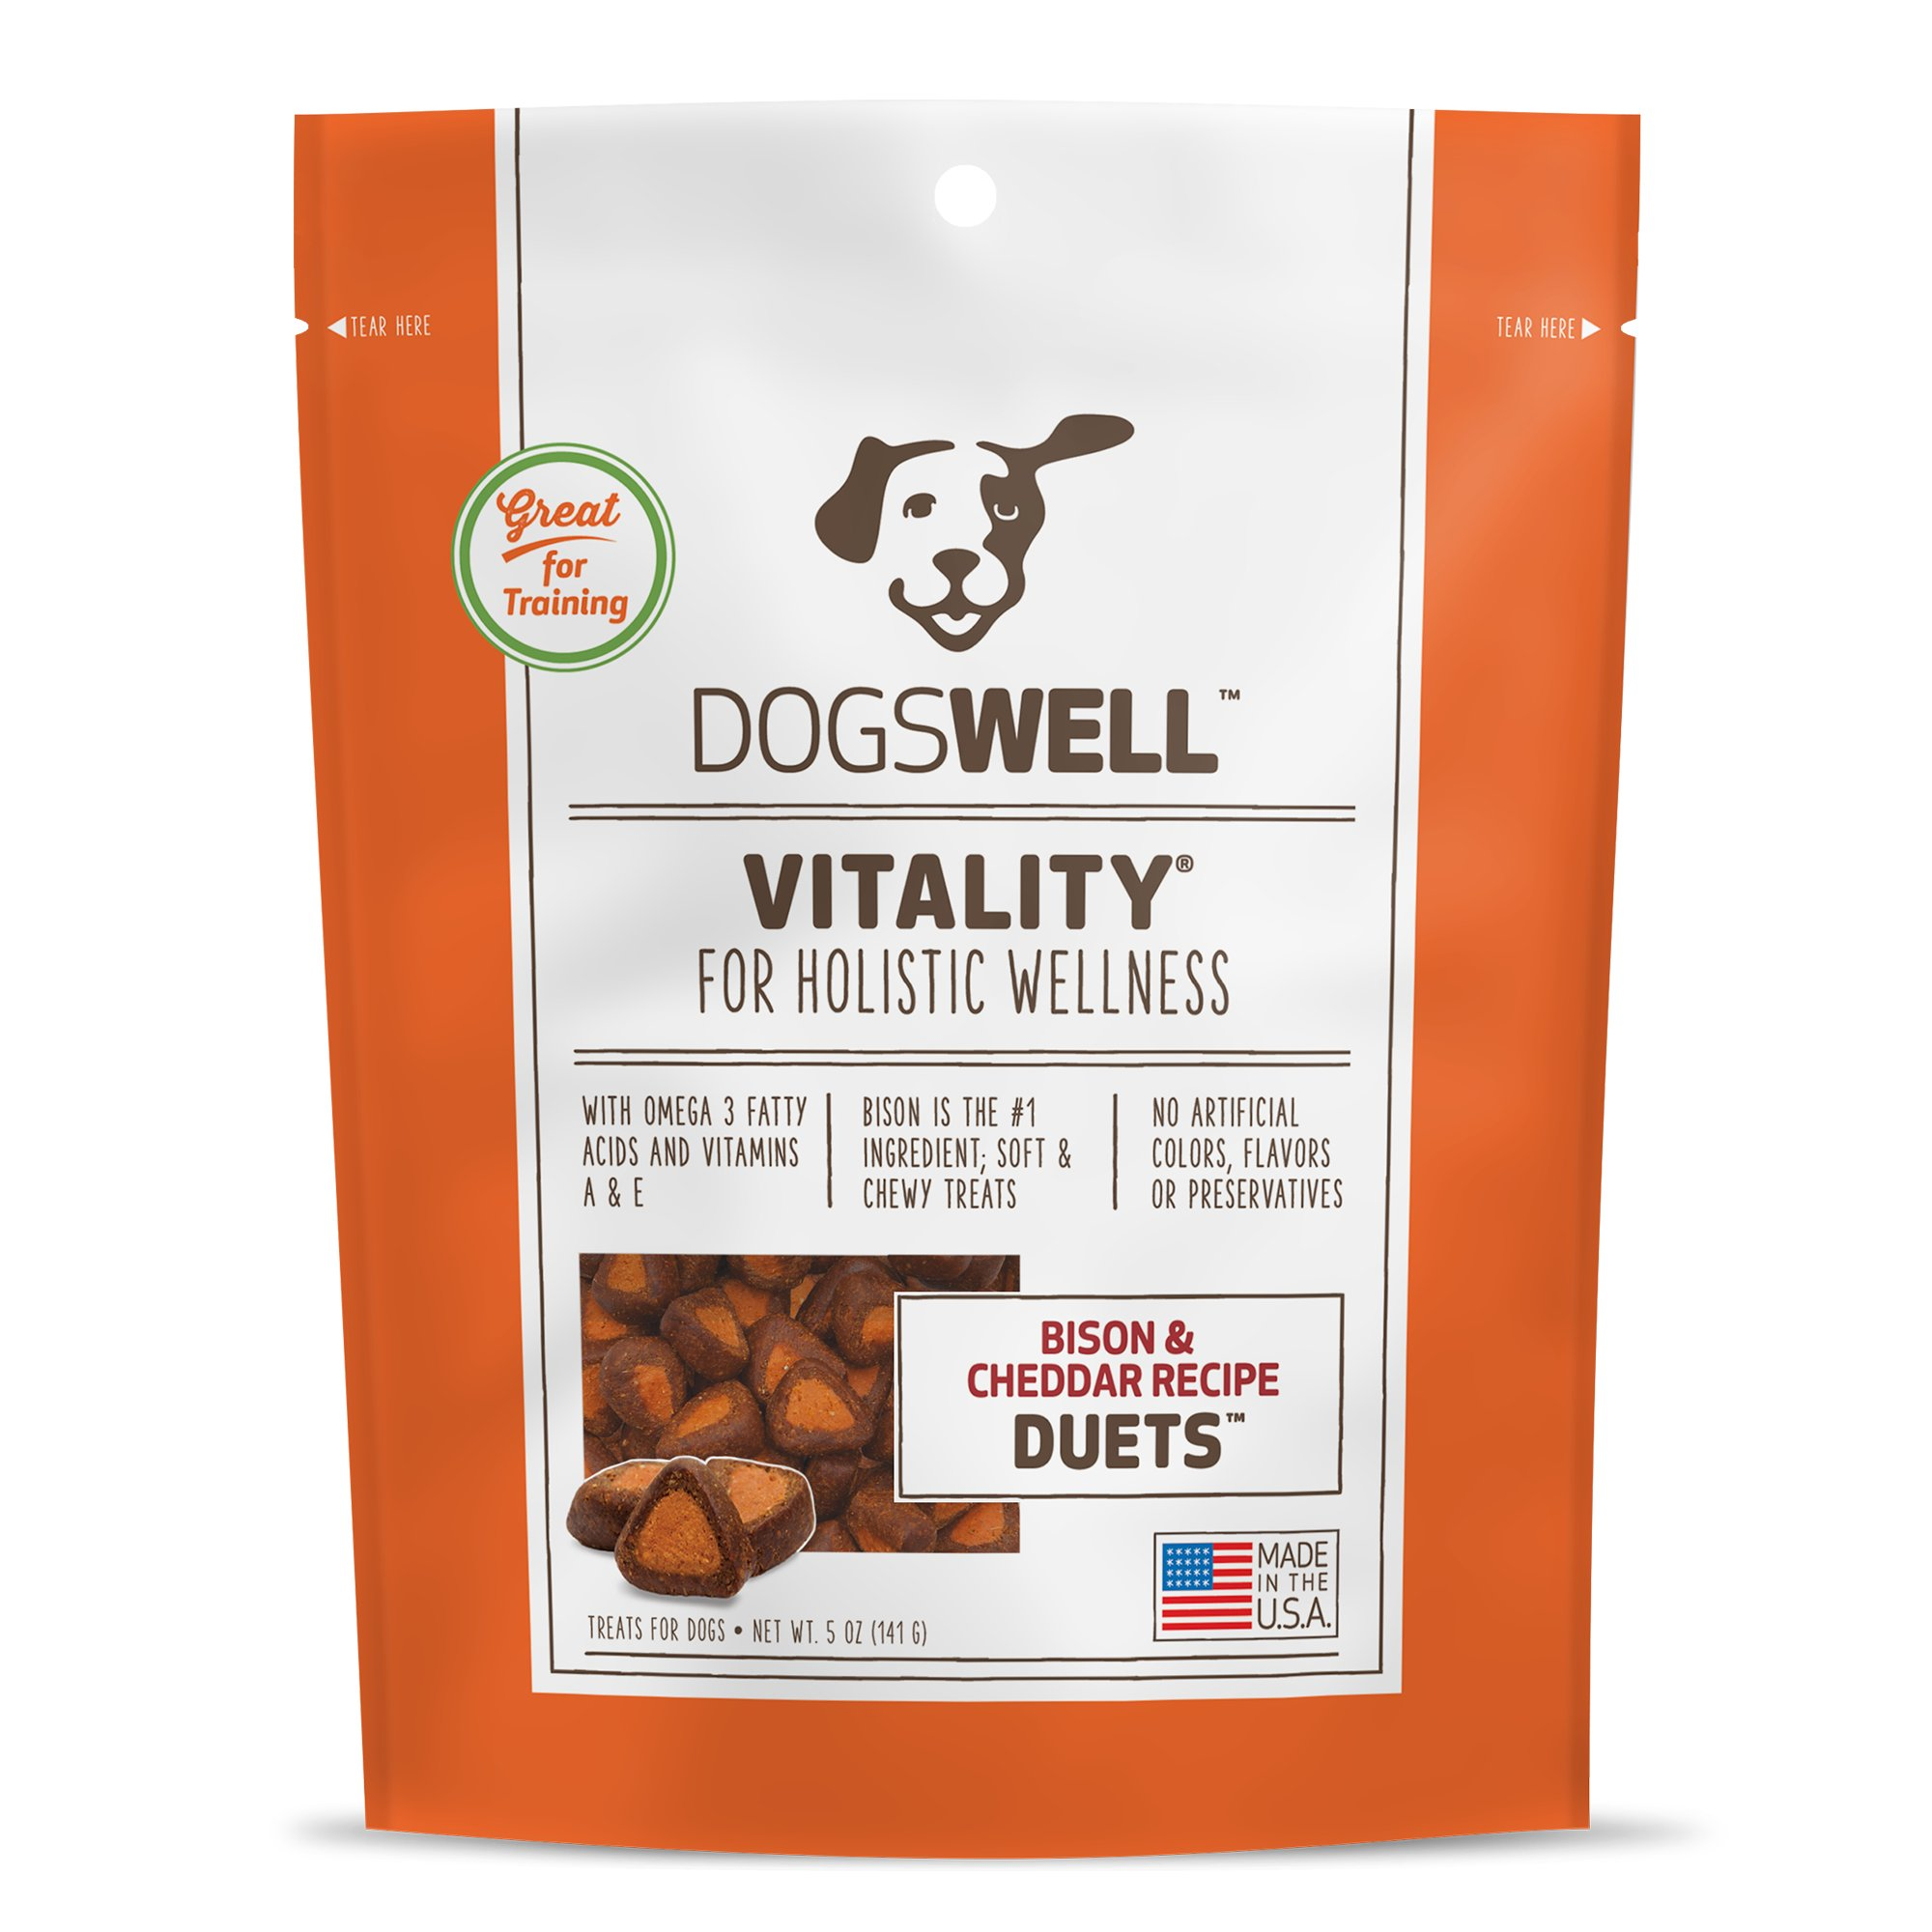 Dogswell Vitality Bison and Cheddar Duets Dog Treats